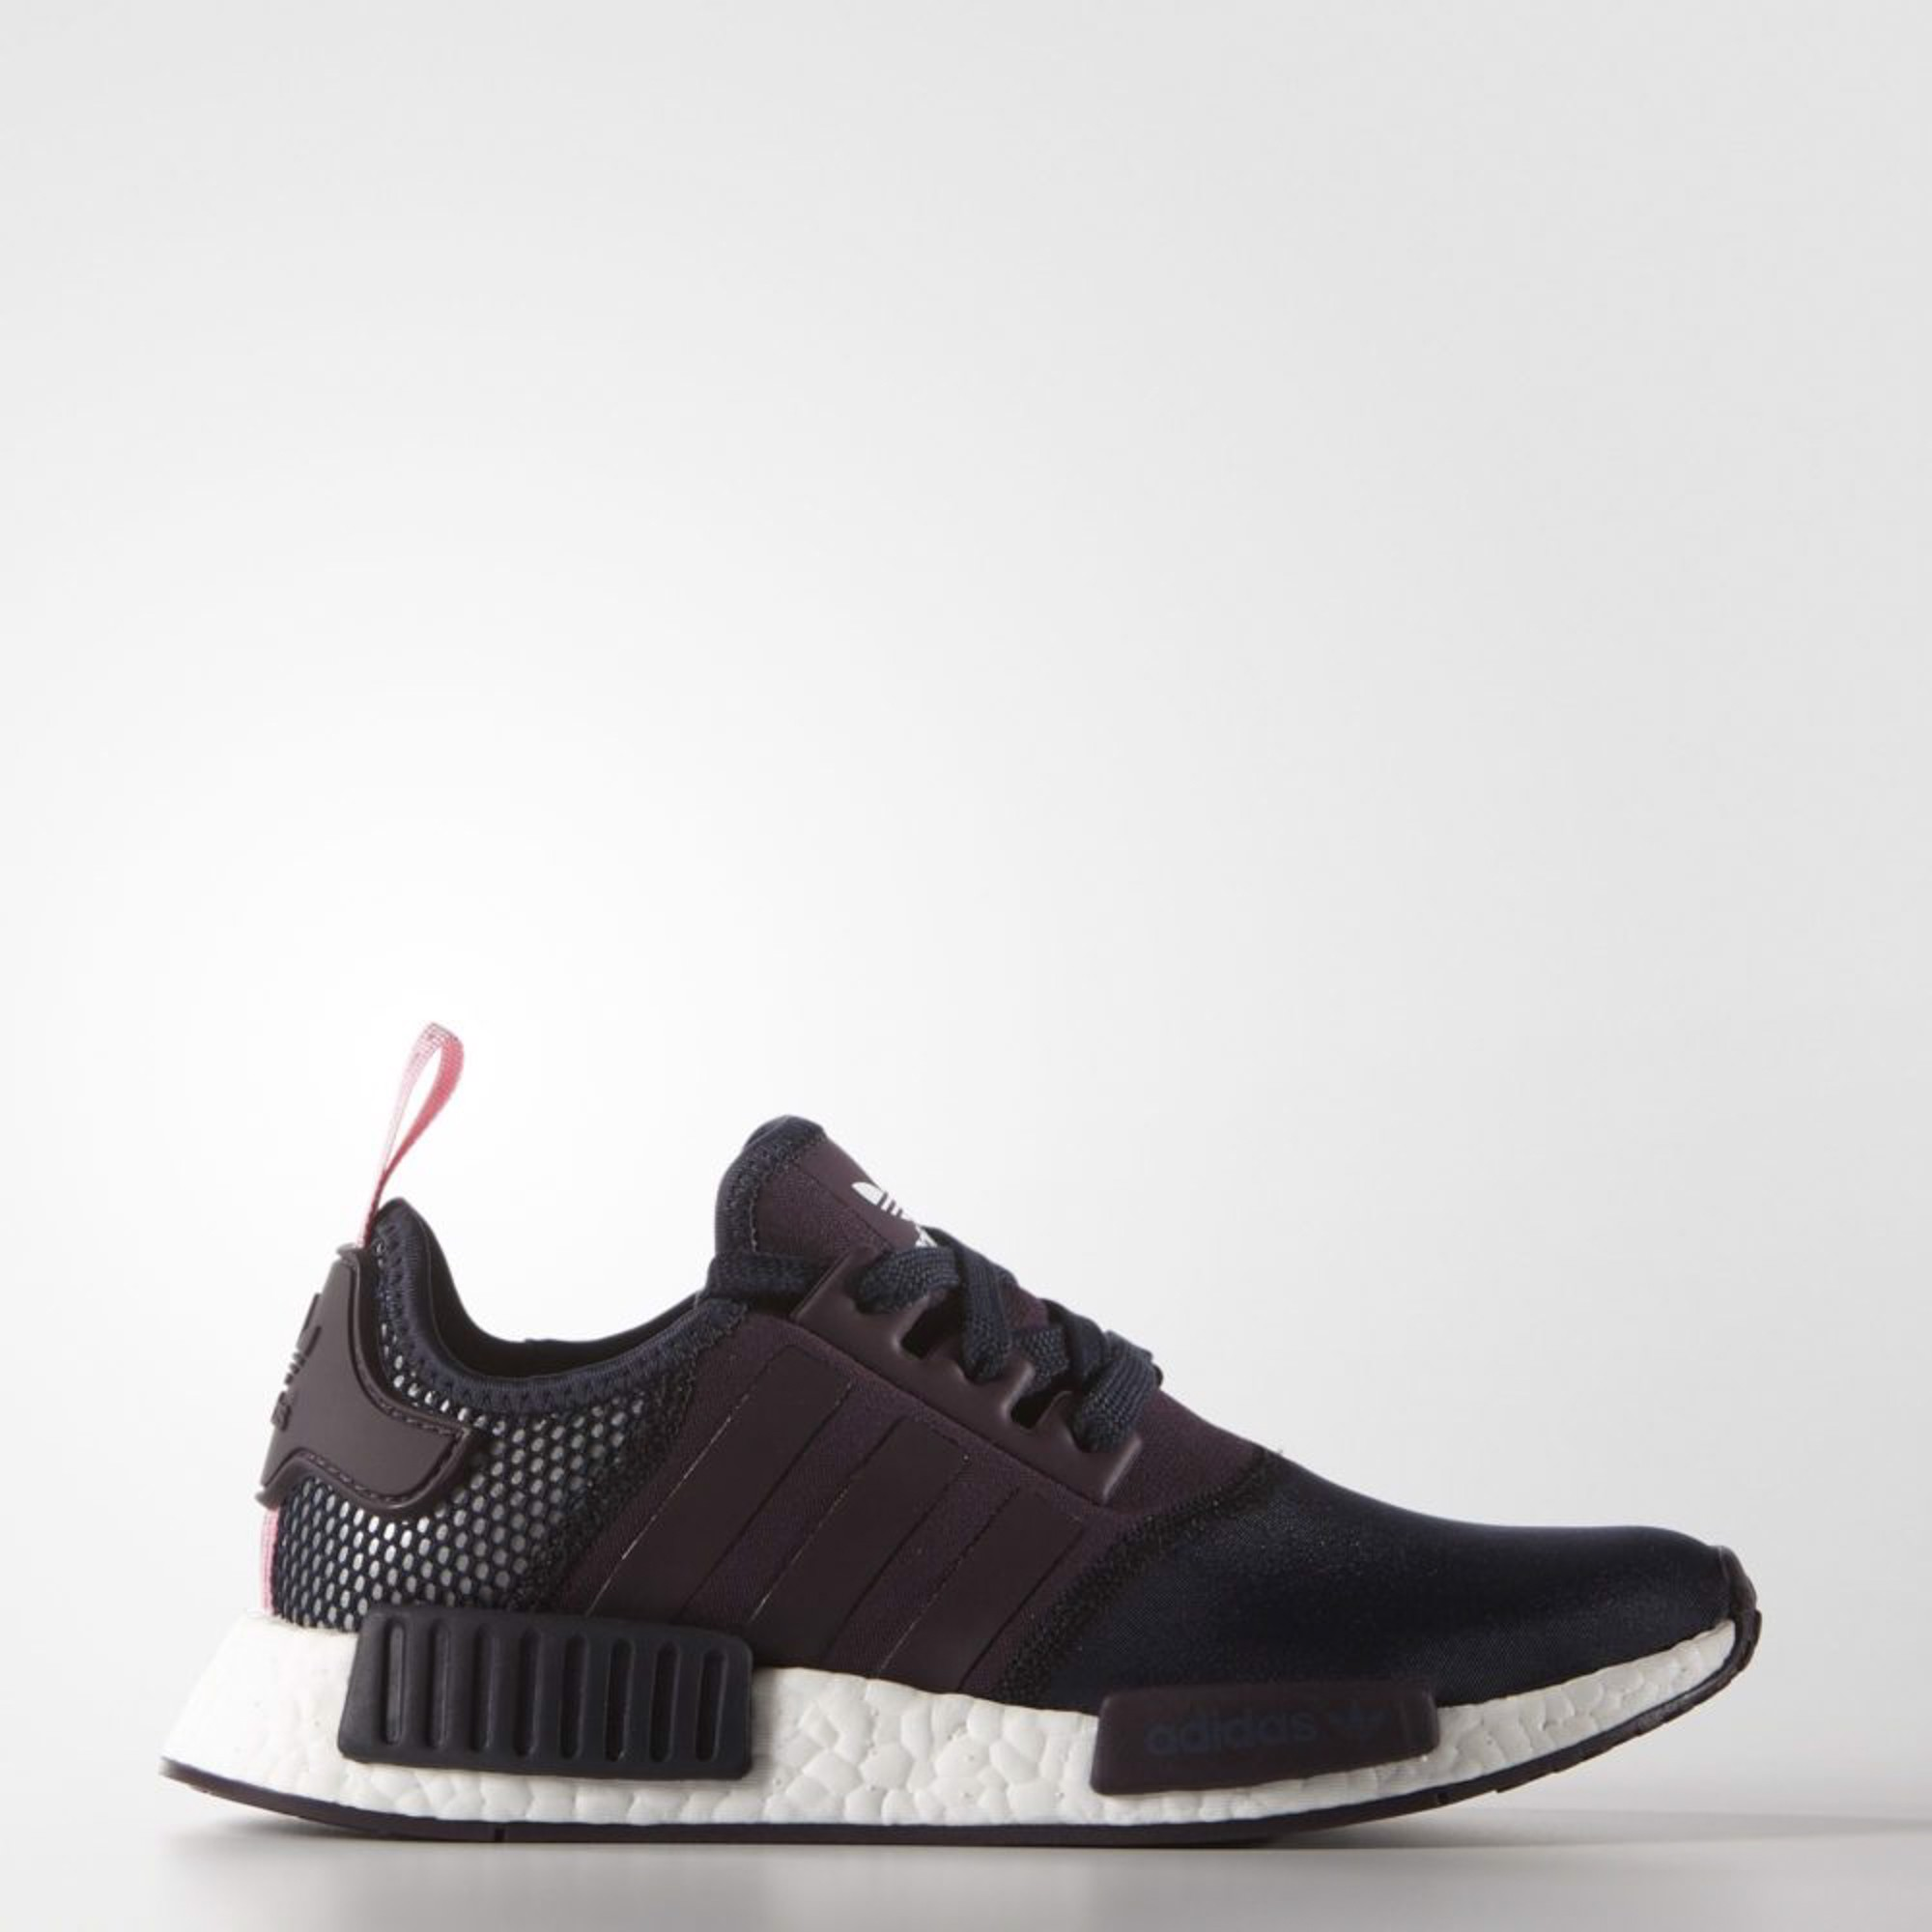 adidas NMD R1 - Legend Ink